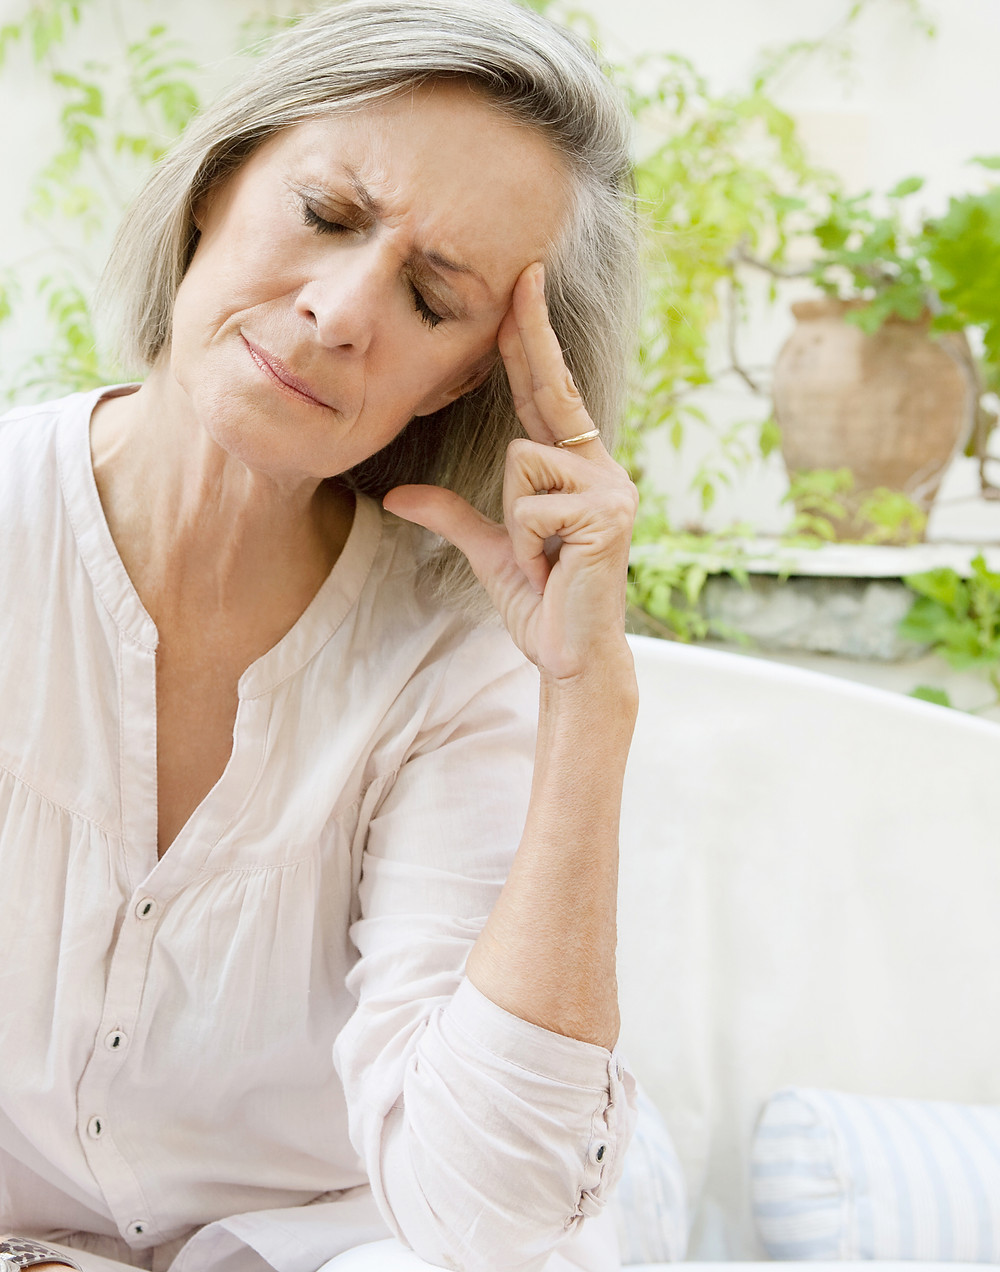 What's the Buzz About Caregiver Fatigue by Vivian Green Korner, Certified Dementia Practitioner, Ridgewood Moms